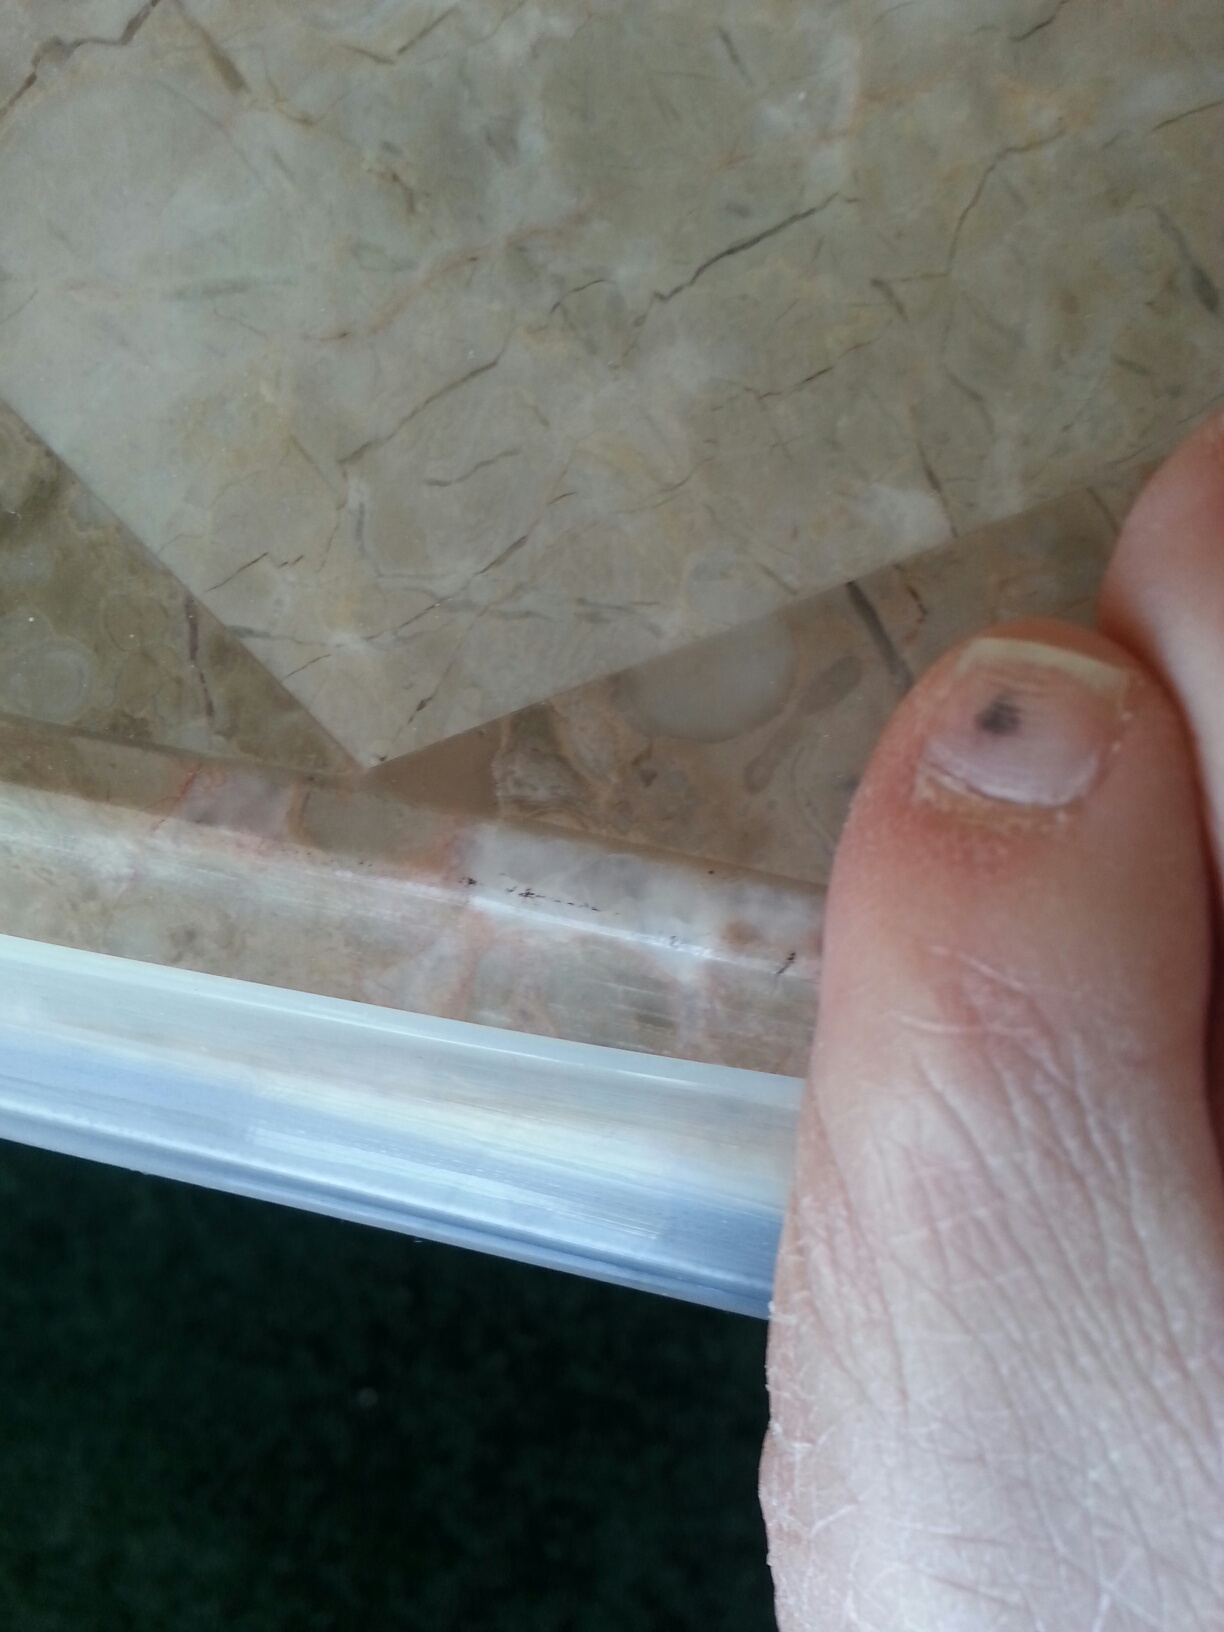 Black Dot On My Toe Nail - Nails Gallery